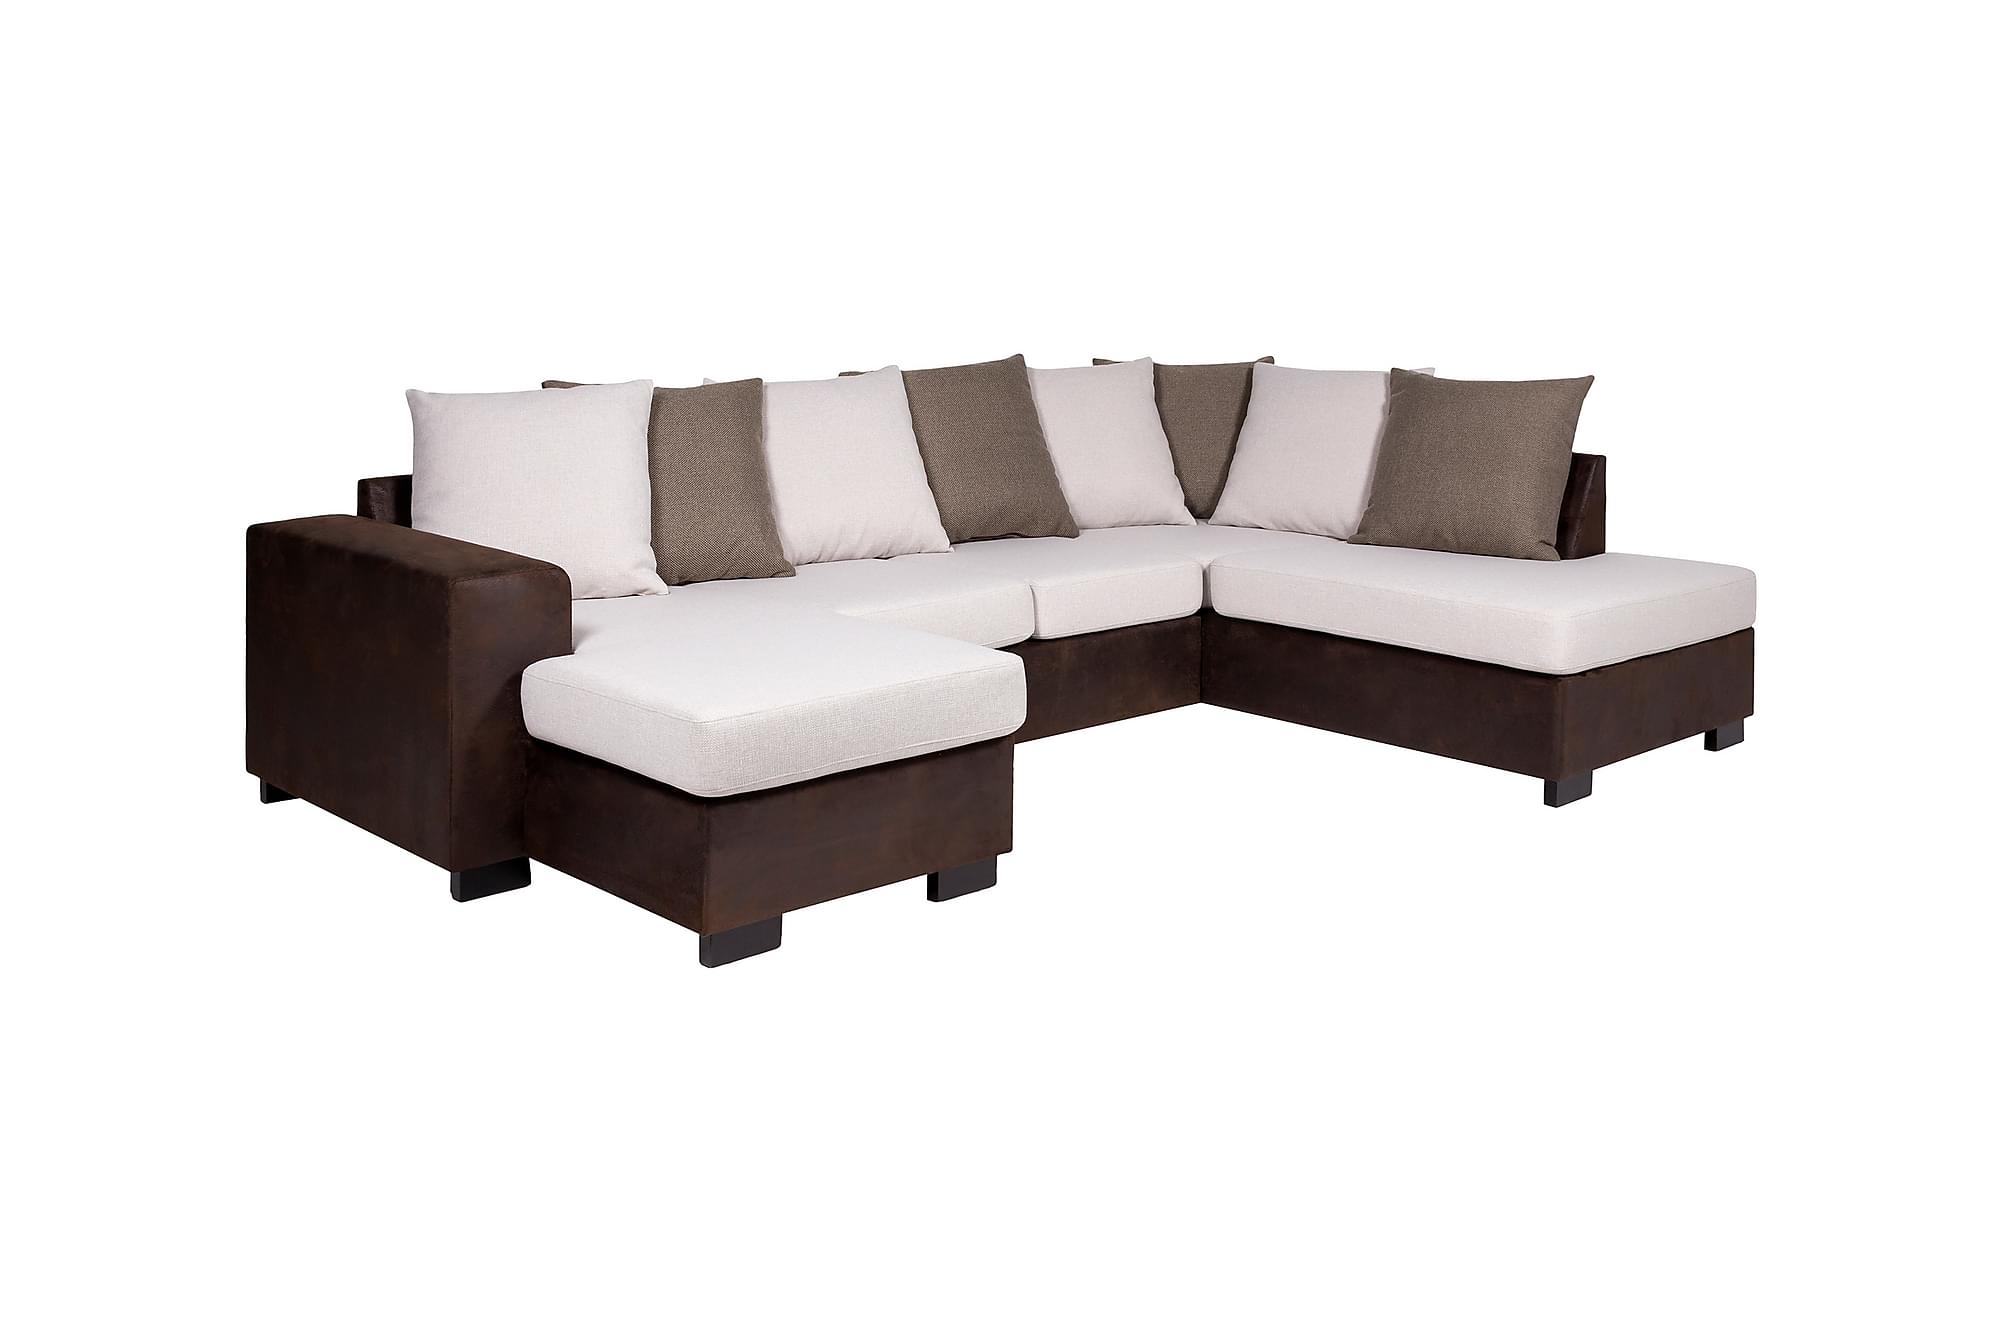 berlin large u sofa h yre beige brun hj rnesofa sofaer. Black Bedroom Furniture Sets. Home Design Ideas